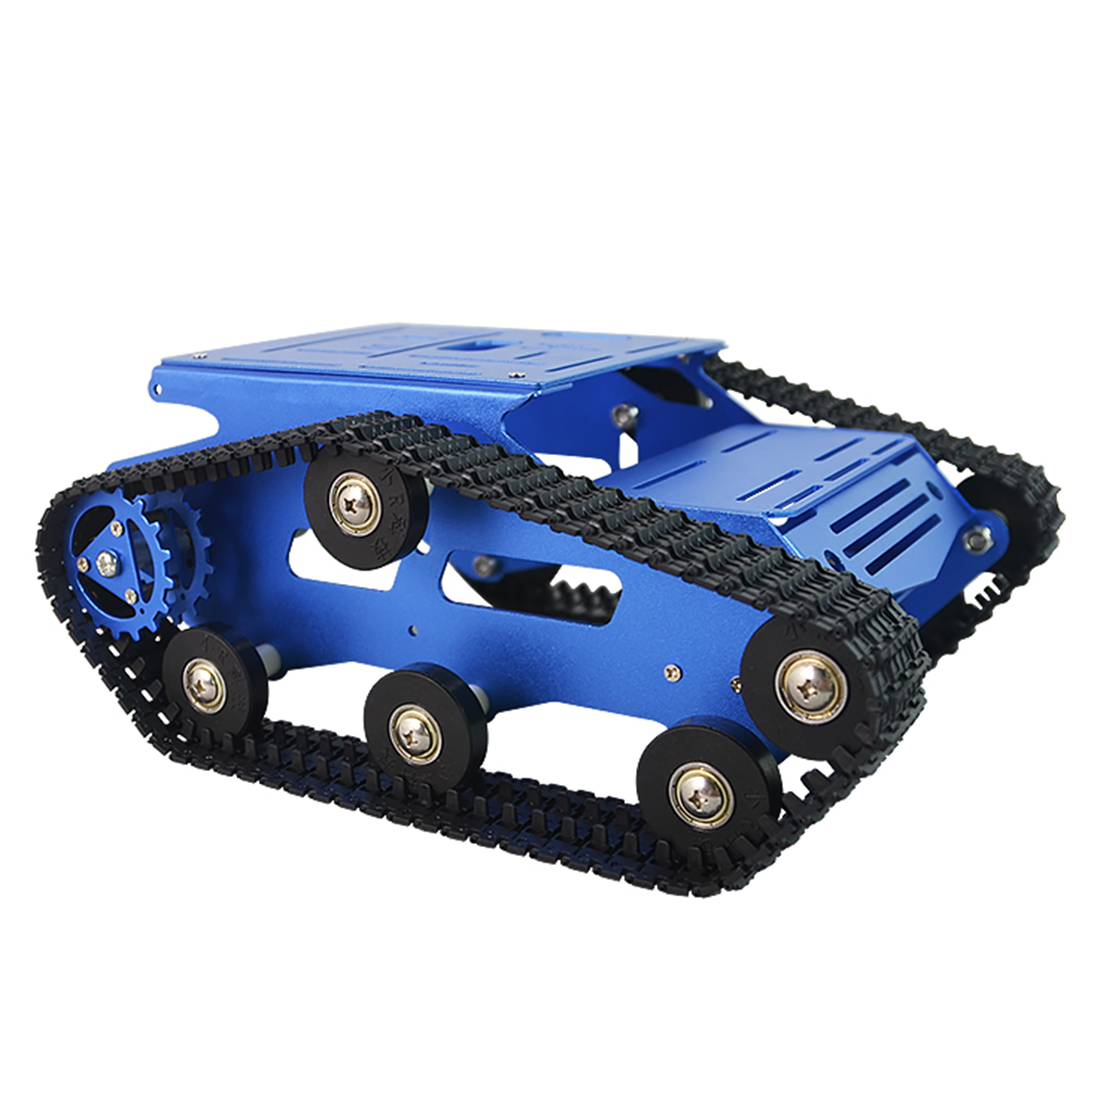 MODIKER DIY High Tech Smart Robot Tank Crawler Chassis Car Frame Kit Programmable Toys Age 8+ Kids Christmas Gift - Blue